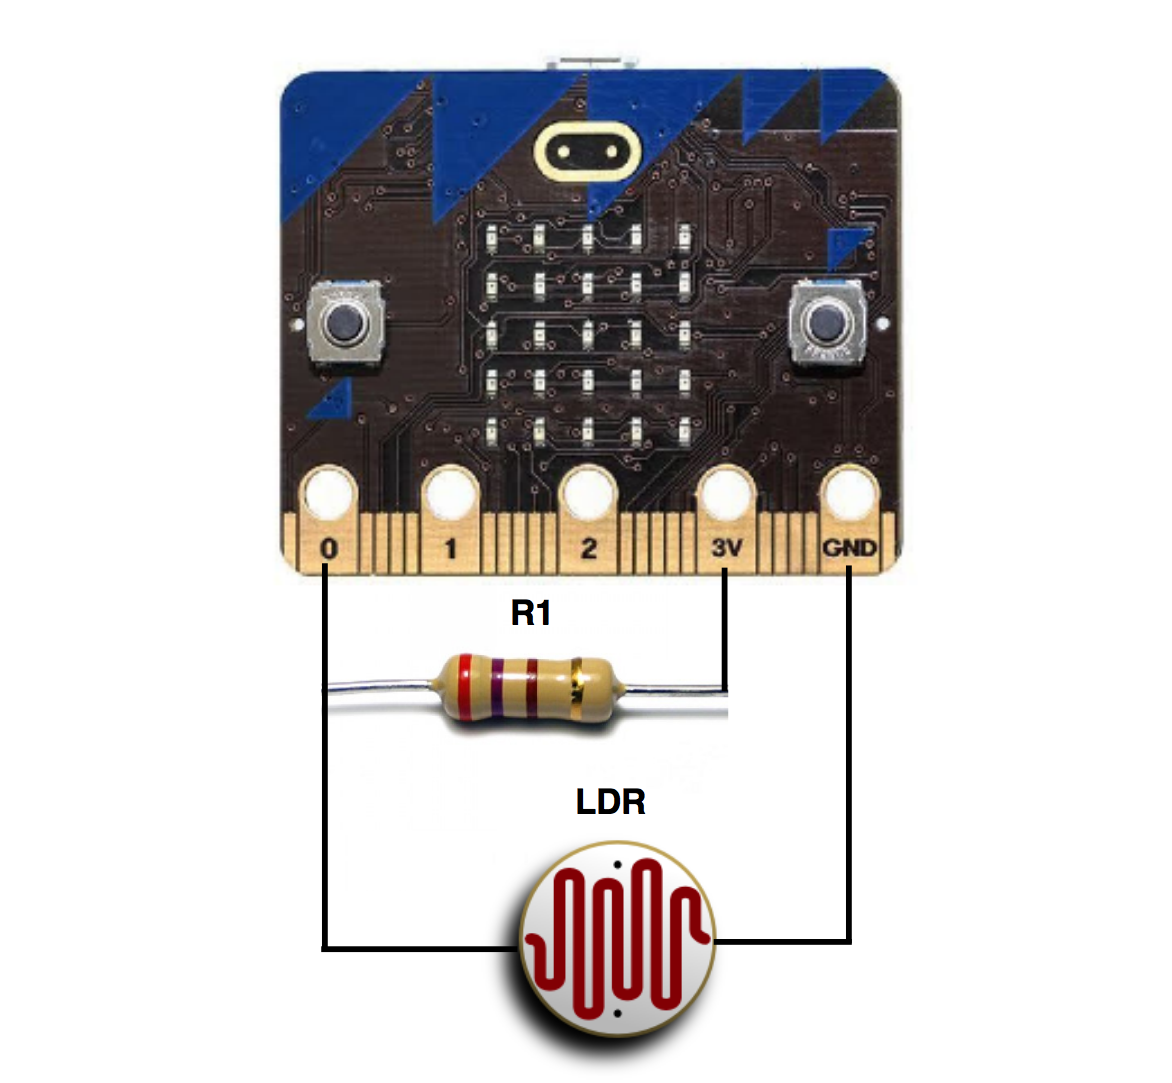 Coffee Timer Part 1 The First Prototype Based On Bbc Microbit Ldr Circuit Light Sensor With Voltage Divider For